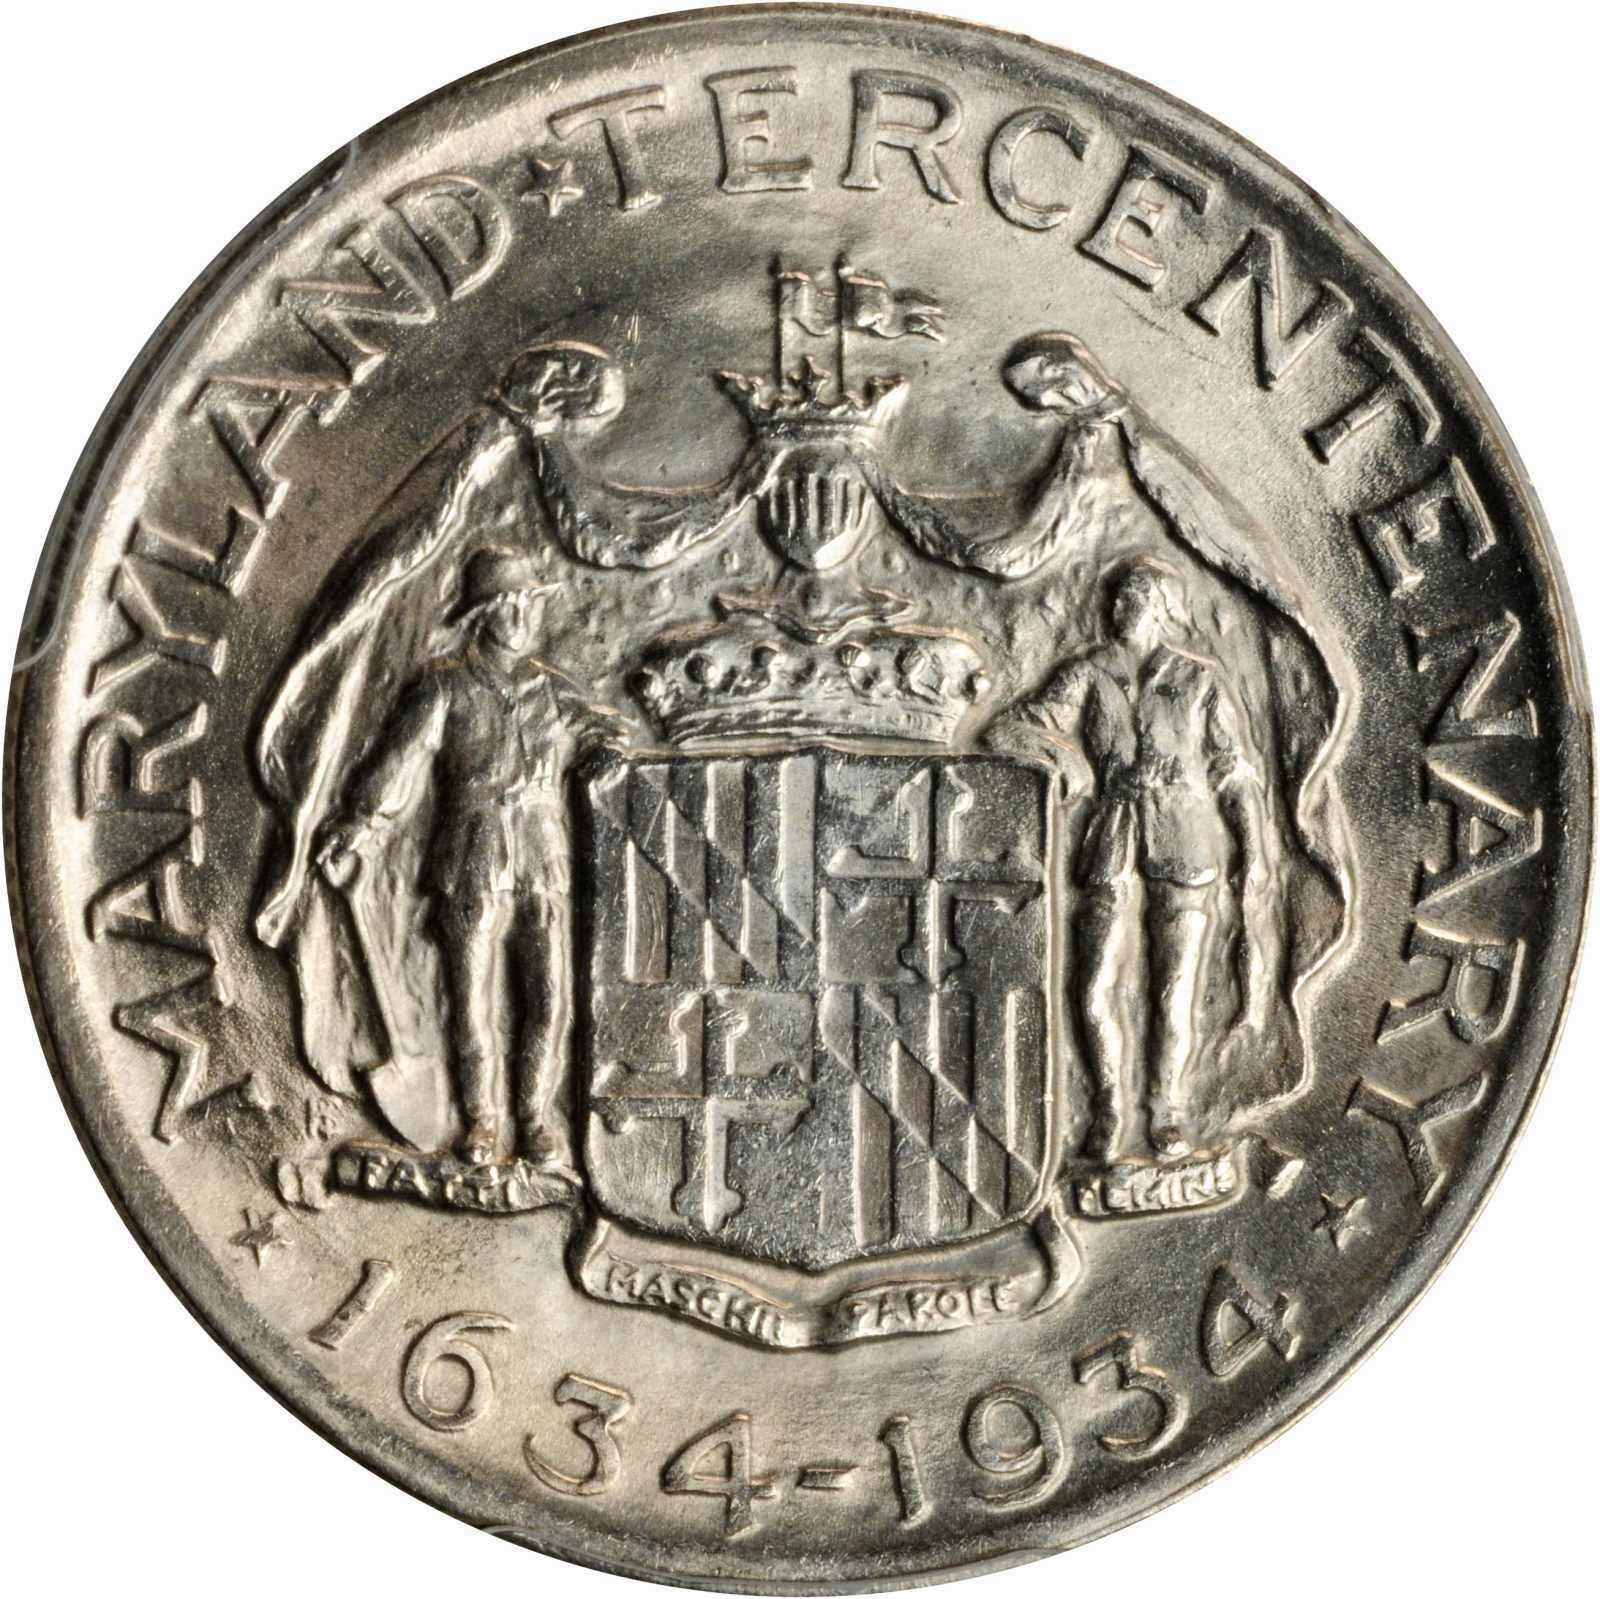 Maryland Tercentenary Silver Commemorative Half Dollar